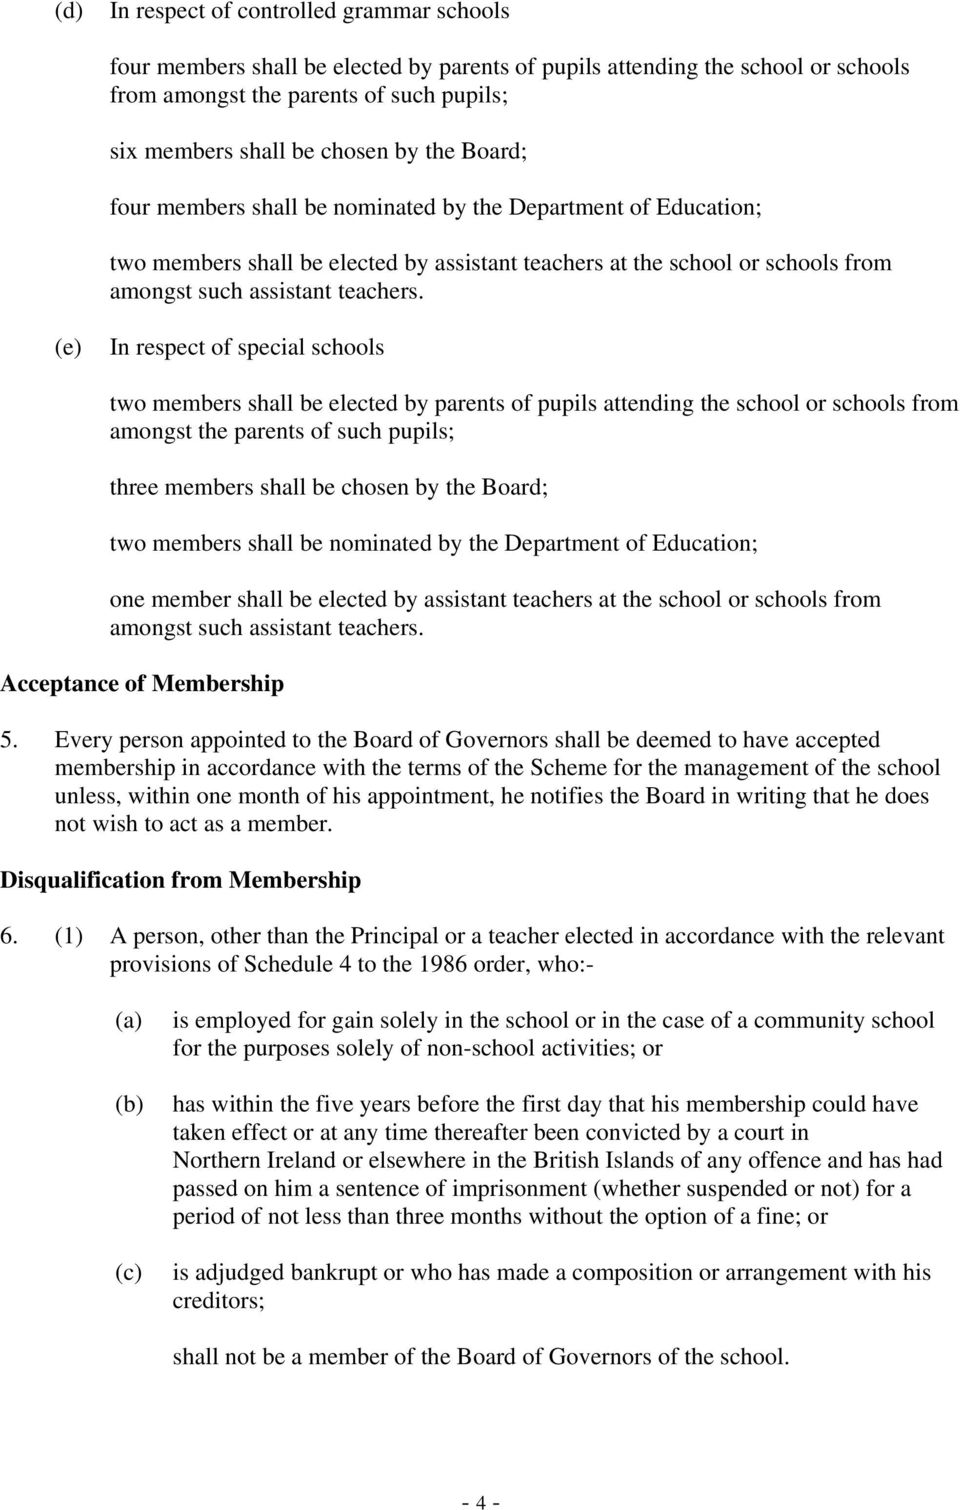 (e) In respect of special schools two members shall be elected by parents of pupils attending the school or schools from amongst the parents of such pupils; three members shall be chosen by the